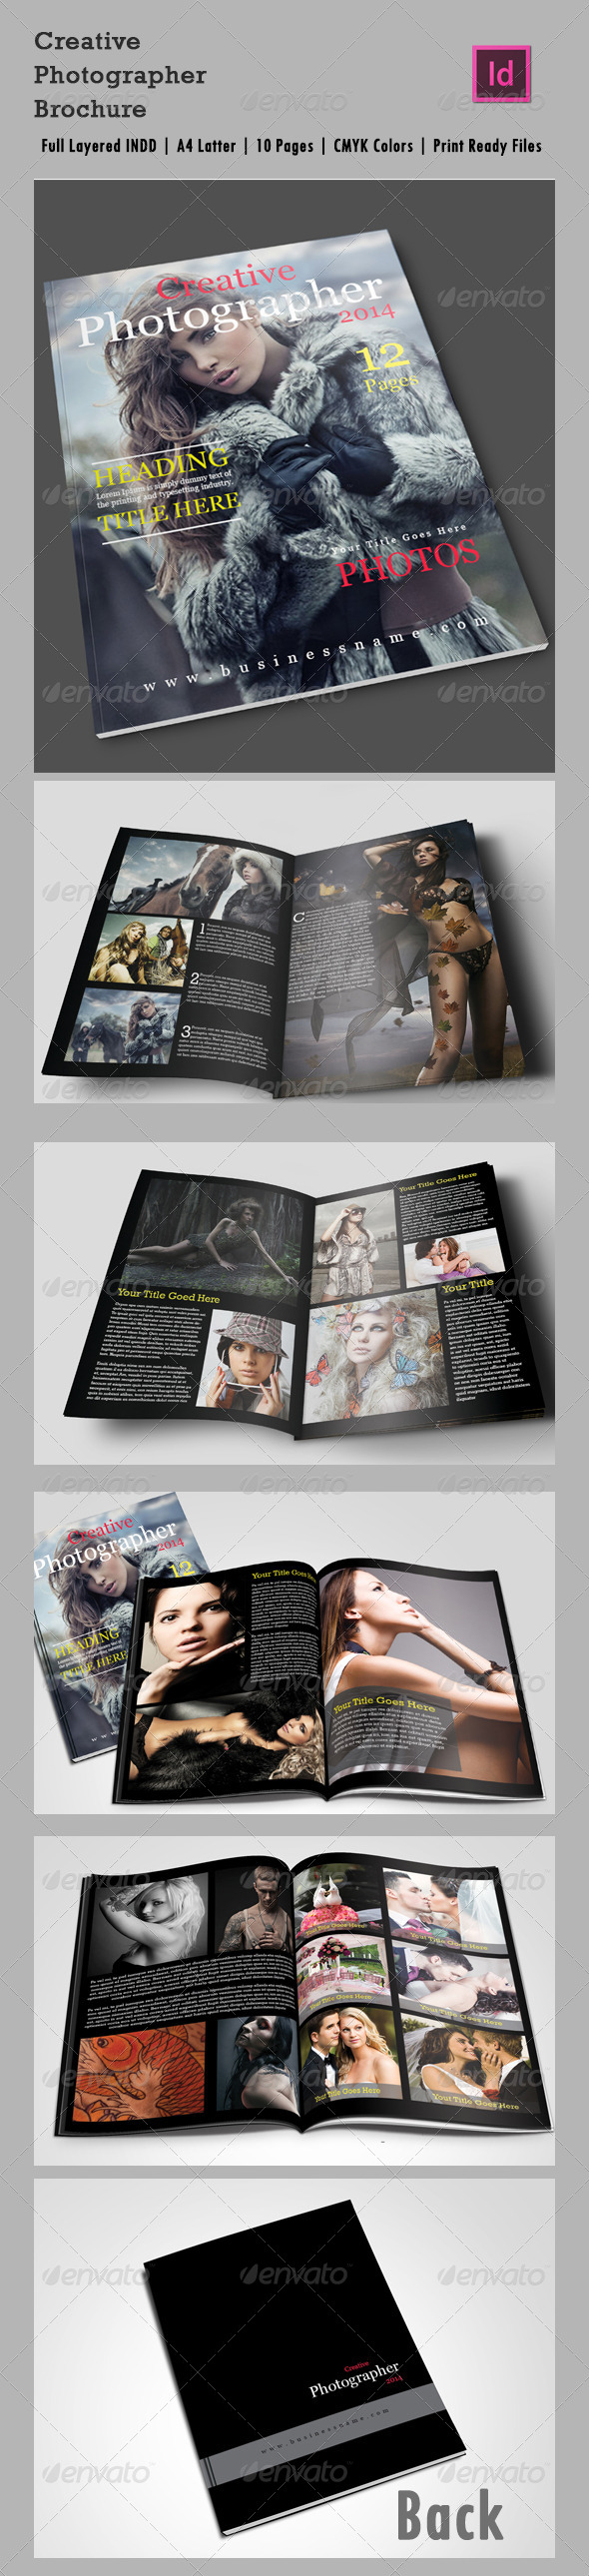 GraphicRiver 10 Page Creative Photographer InDesign Brochure A4 6410243